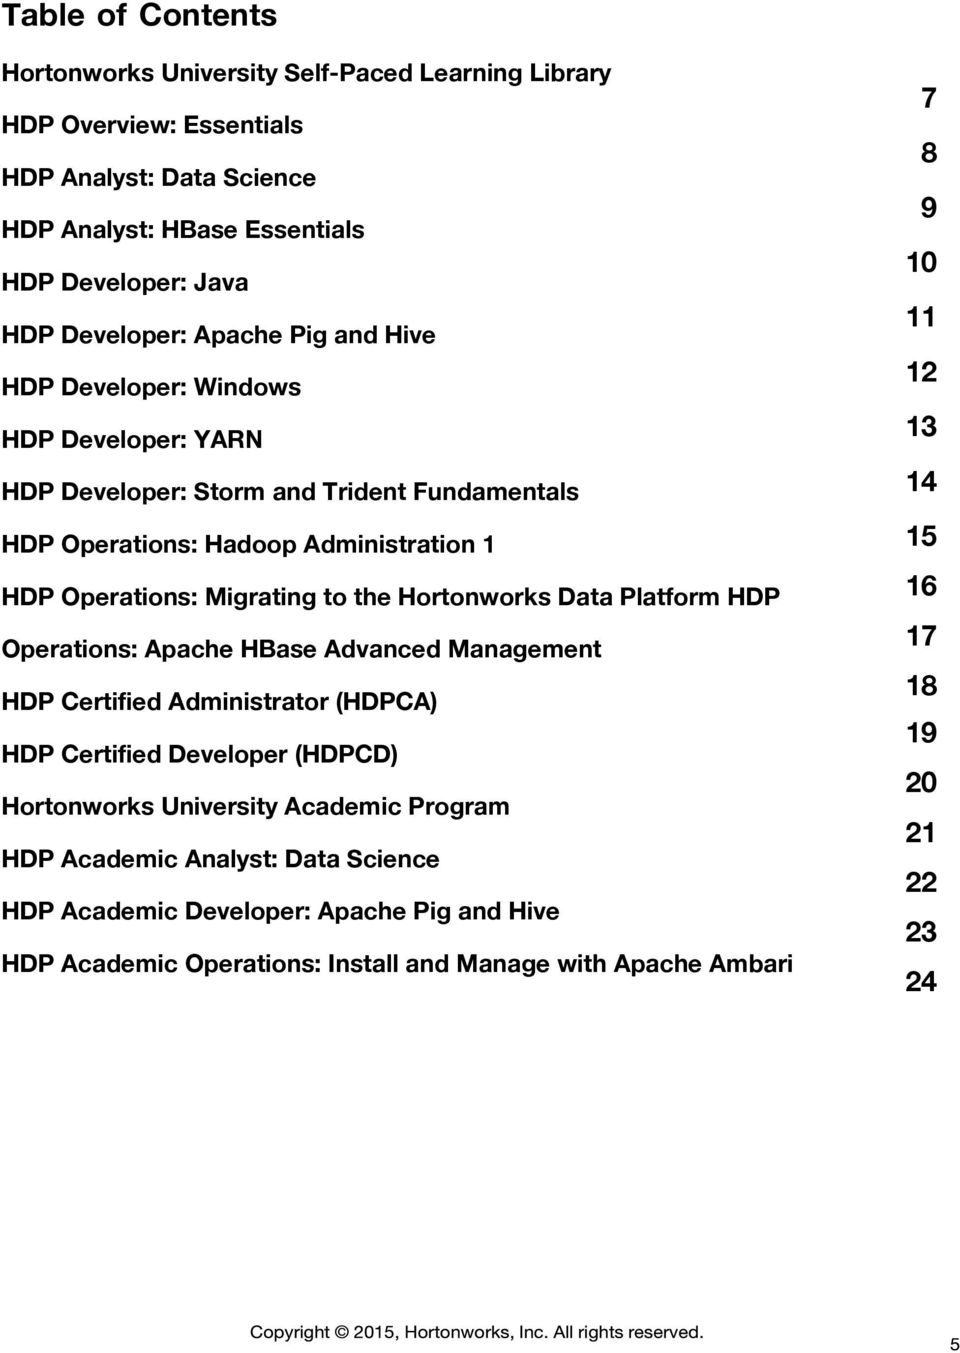 Hortonworks Data Platform HDP Operations: Apache HBase Advanced Management HDP Certified Administrator (HDPCA) HDP Certified Developer (HDPCD) Academic Program HDP